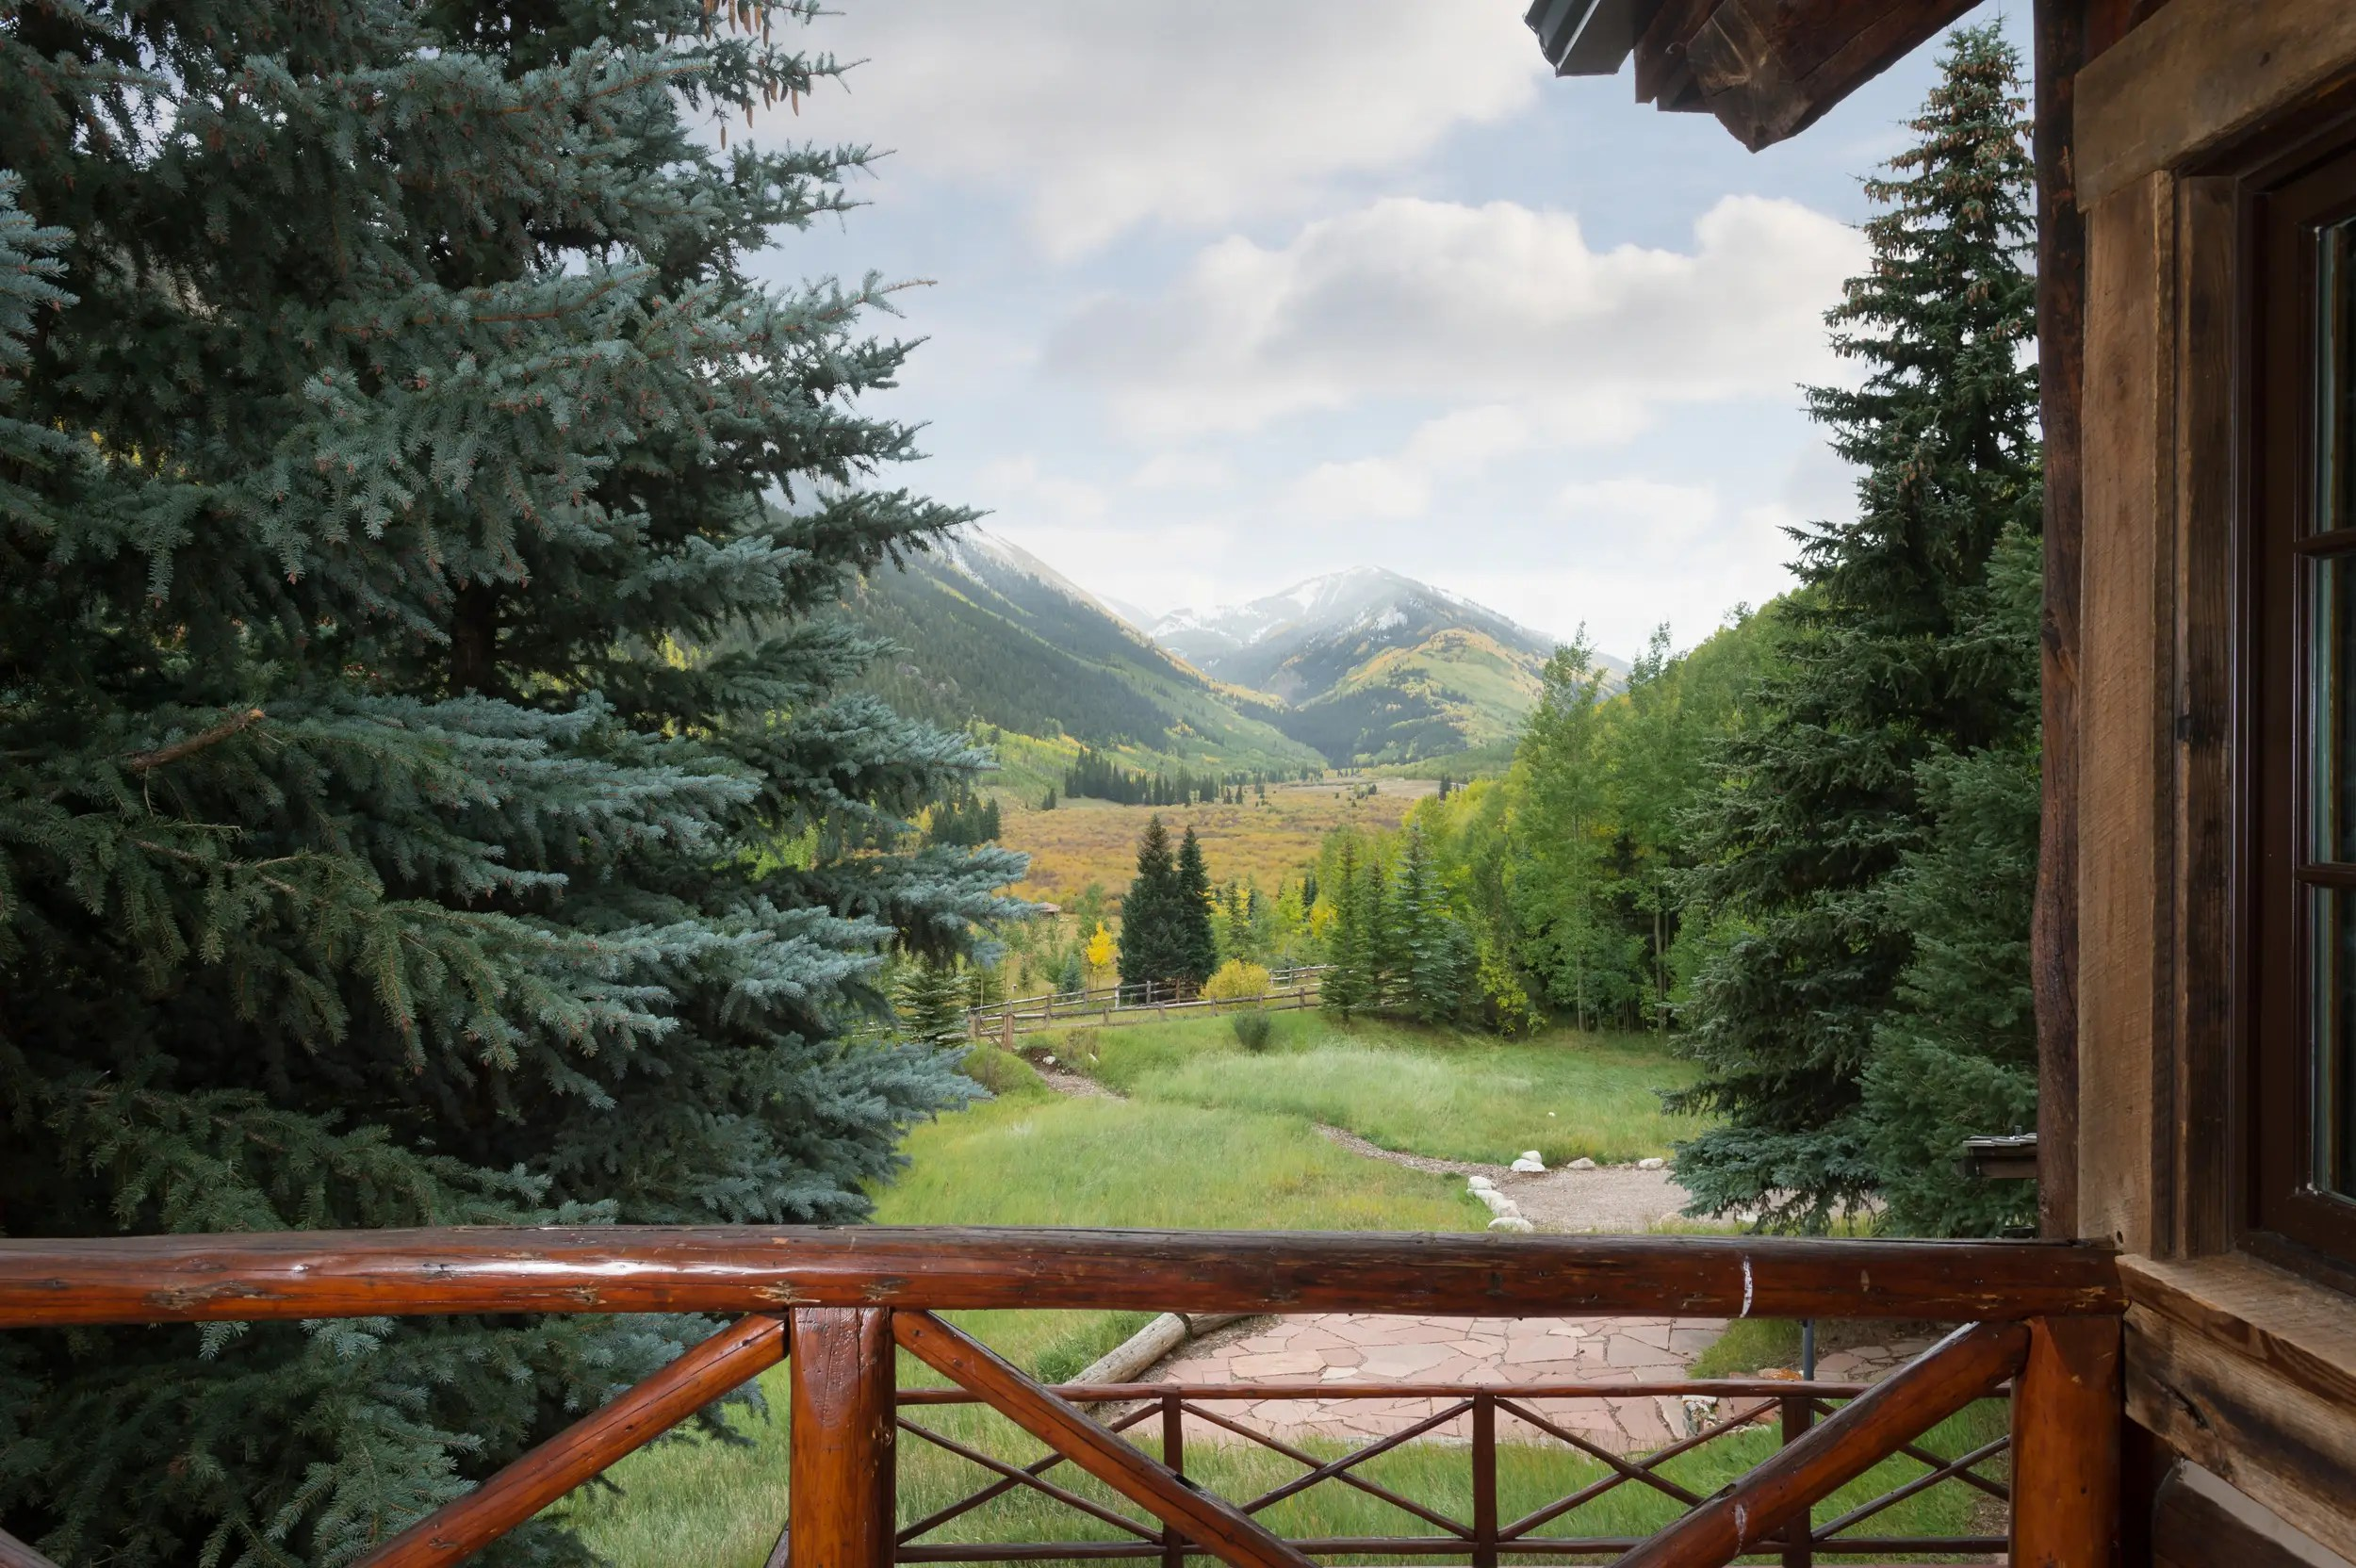 Here's a view over Castle Creek Valley from one of the lodge's guest rooms.